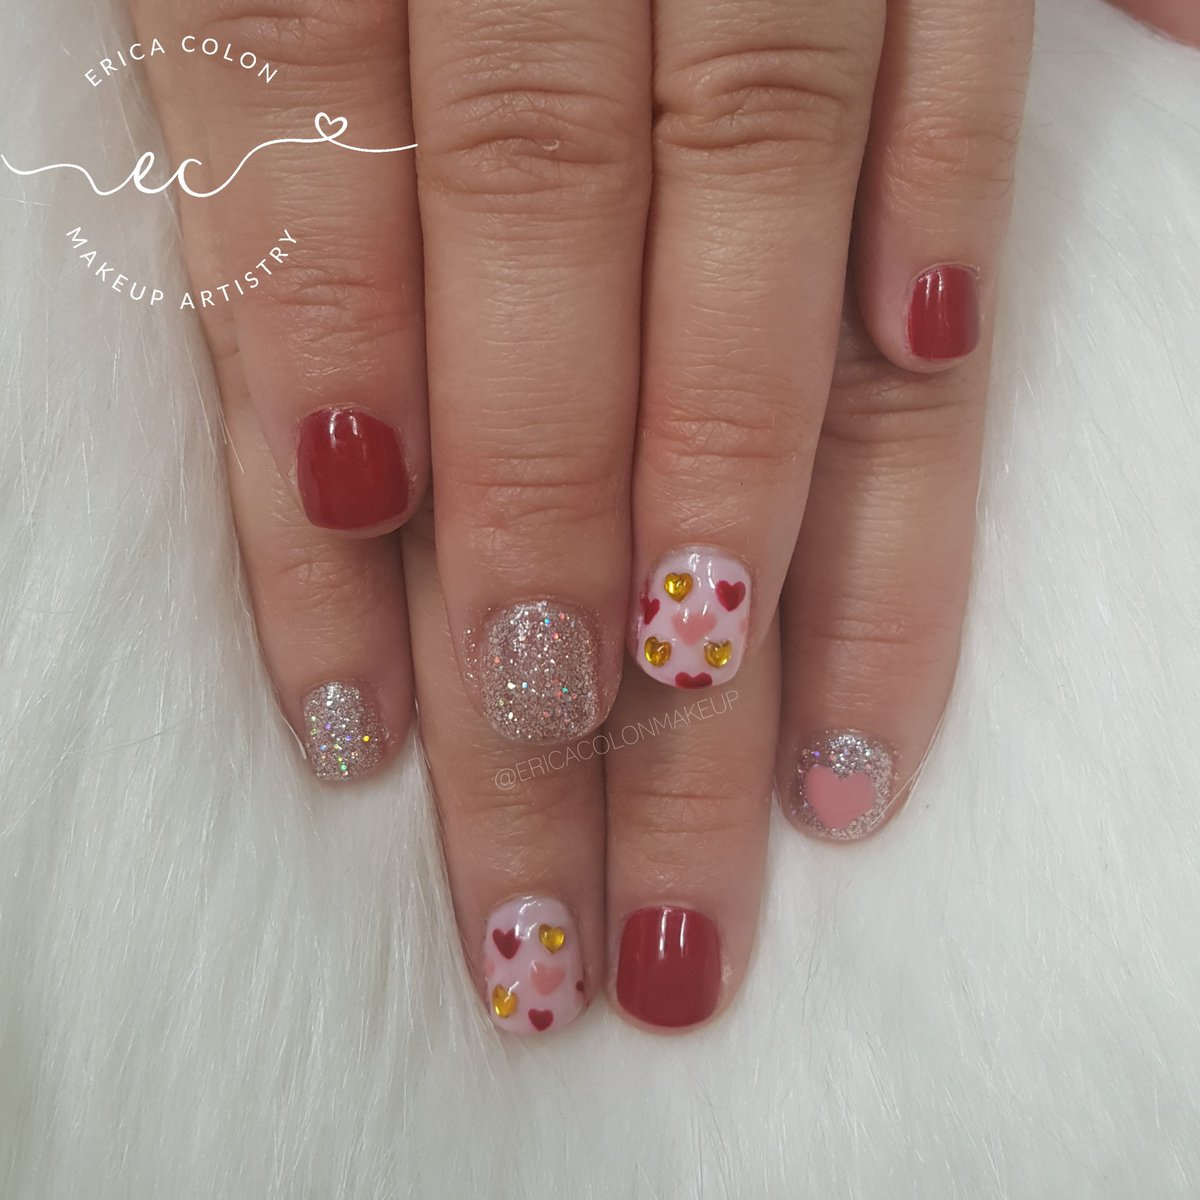 nailartist - Twitter Search